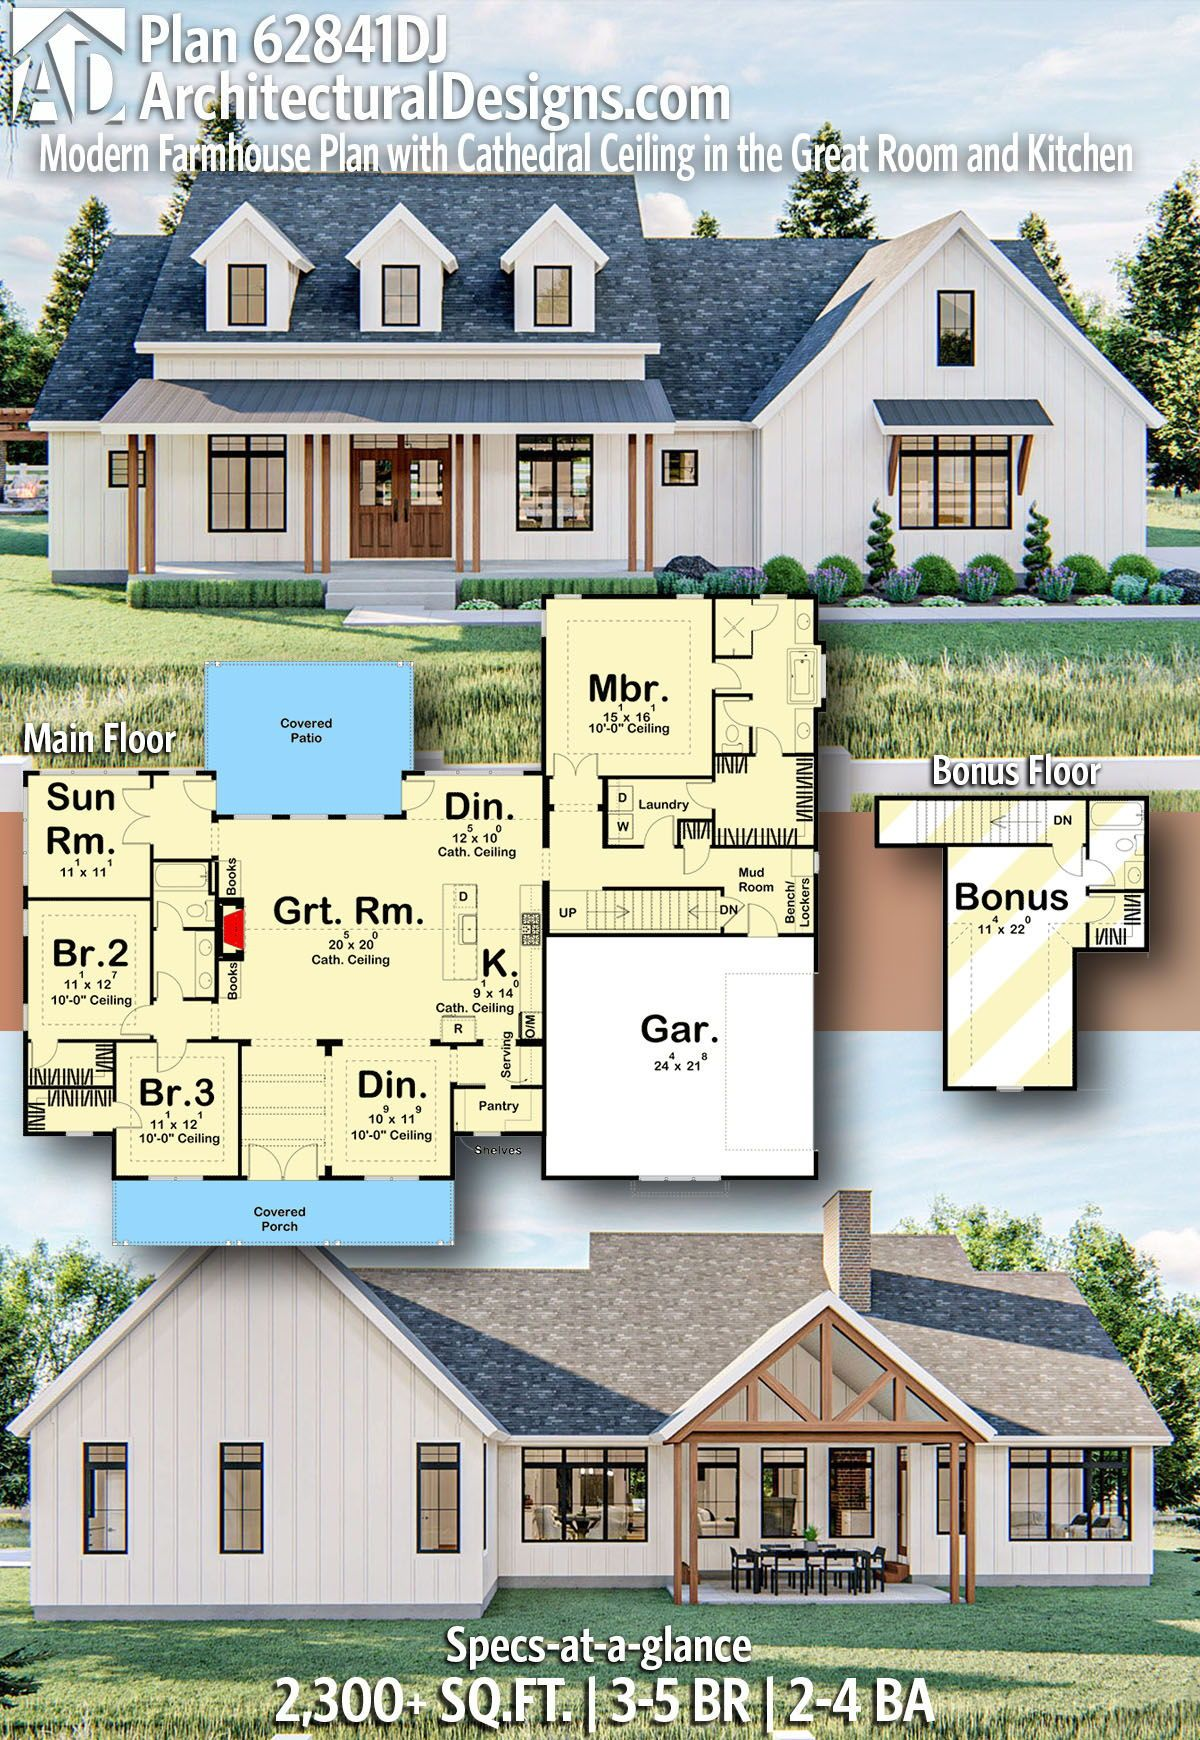 Plan 62841dj Modern Farmhouse Plan With Cathedral Ceiling In The Great Room And Kitchen Modern Farmhouse Plans House Plans Farmhouse Farmhouse Plans